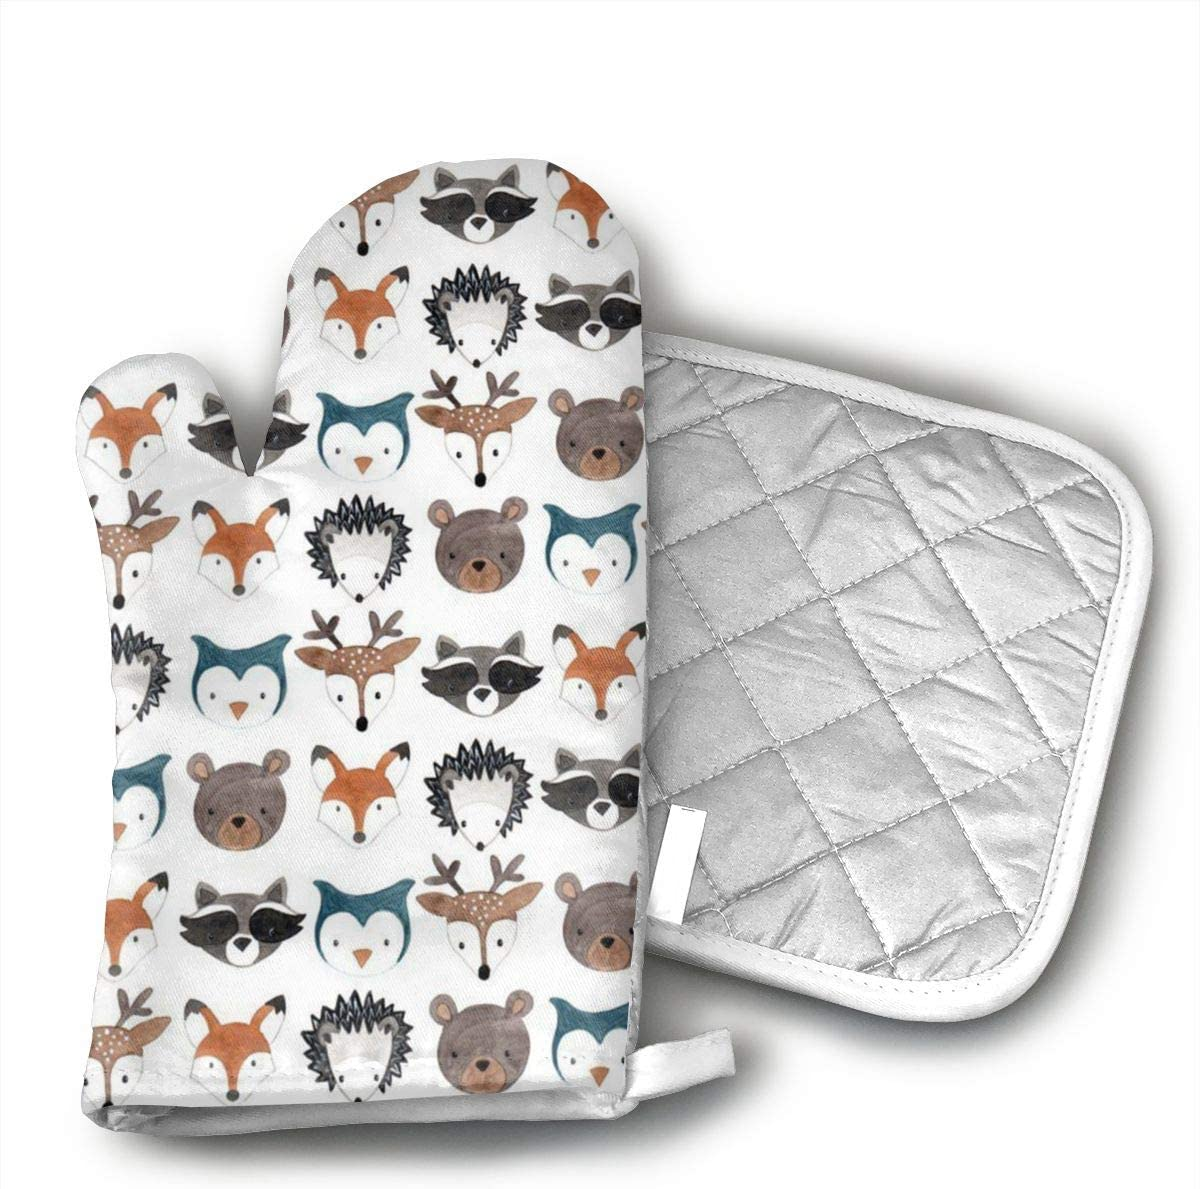 JFNNRUOP Woodland Creatures Deer Bear Mouse Oven Mitts,with Potholders Oven Gloves,Insulated Quilted Cotton Potholders